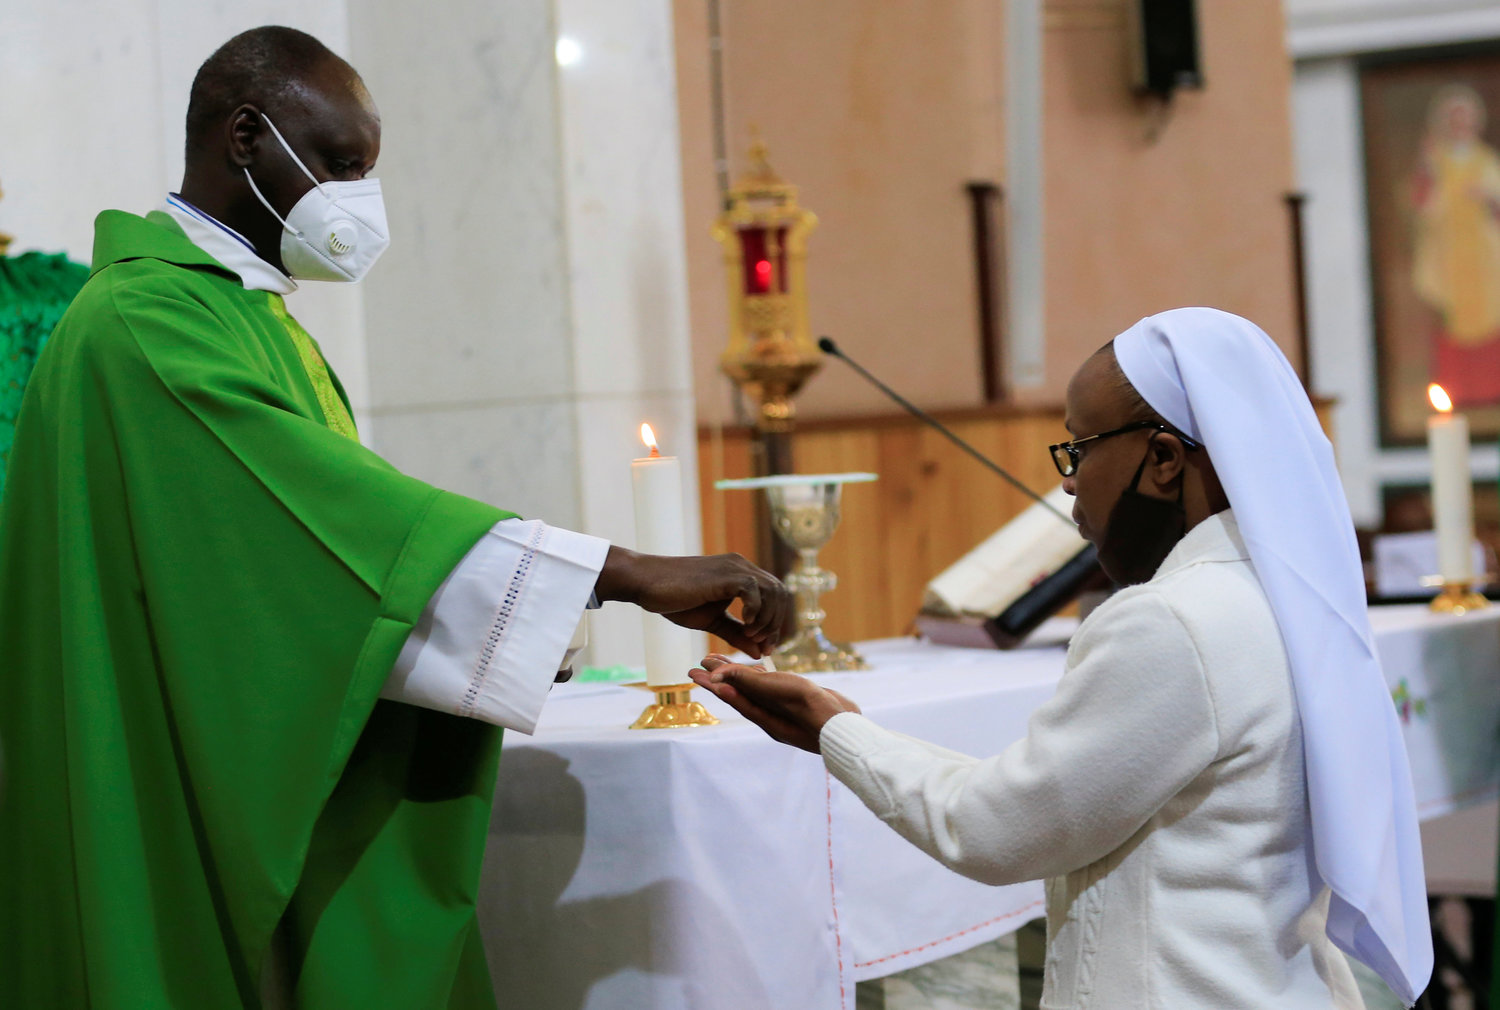 A priest wearing a face mask gives Communion to a woman religious during a July 19, 2020, Mass at the Cathedral Basilica of the Holy Family in Nairobi, Kenya, on the first day the government allowed churches to reopen for worship during the coronavirus pandemic. The Vatican issued a new instruction July 20 on pastoral care that emphasizes the role of lay men and women in the church's mission, but said most parishes must be led by priests.